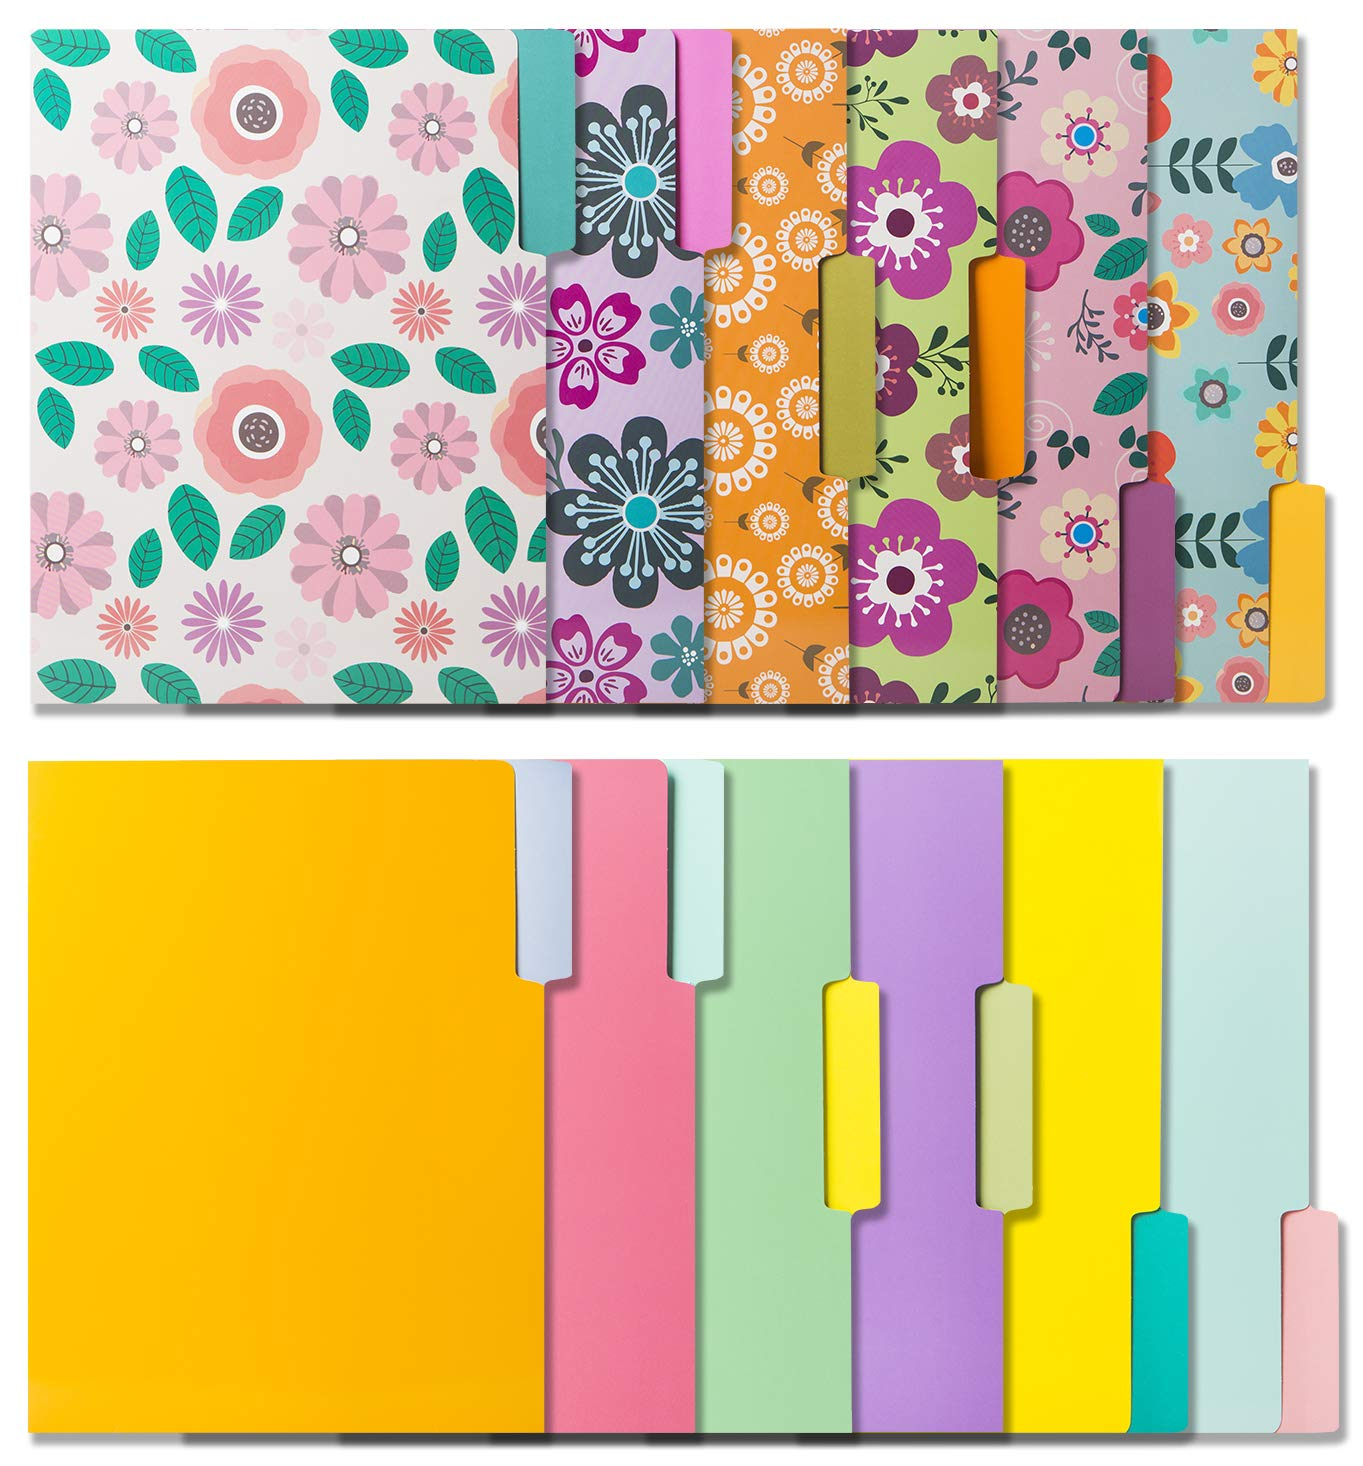 Colored File Folders -12 File Folders In Vibrant Colors & Cute Floral Designs -Decorative File Folders -Cute File Folders- Pretty File Folders- Letter Size File Folders -9.5 x 11.5 Inches (Pack of 12) by Bargain Paradise